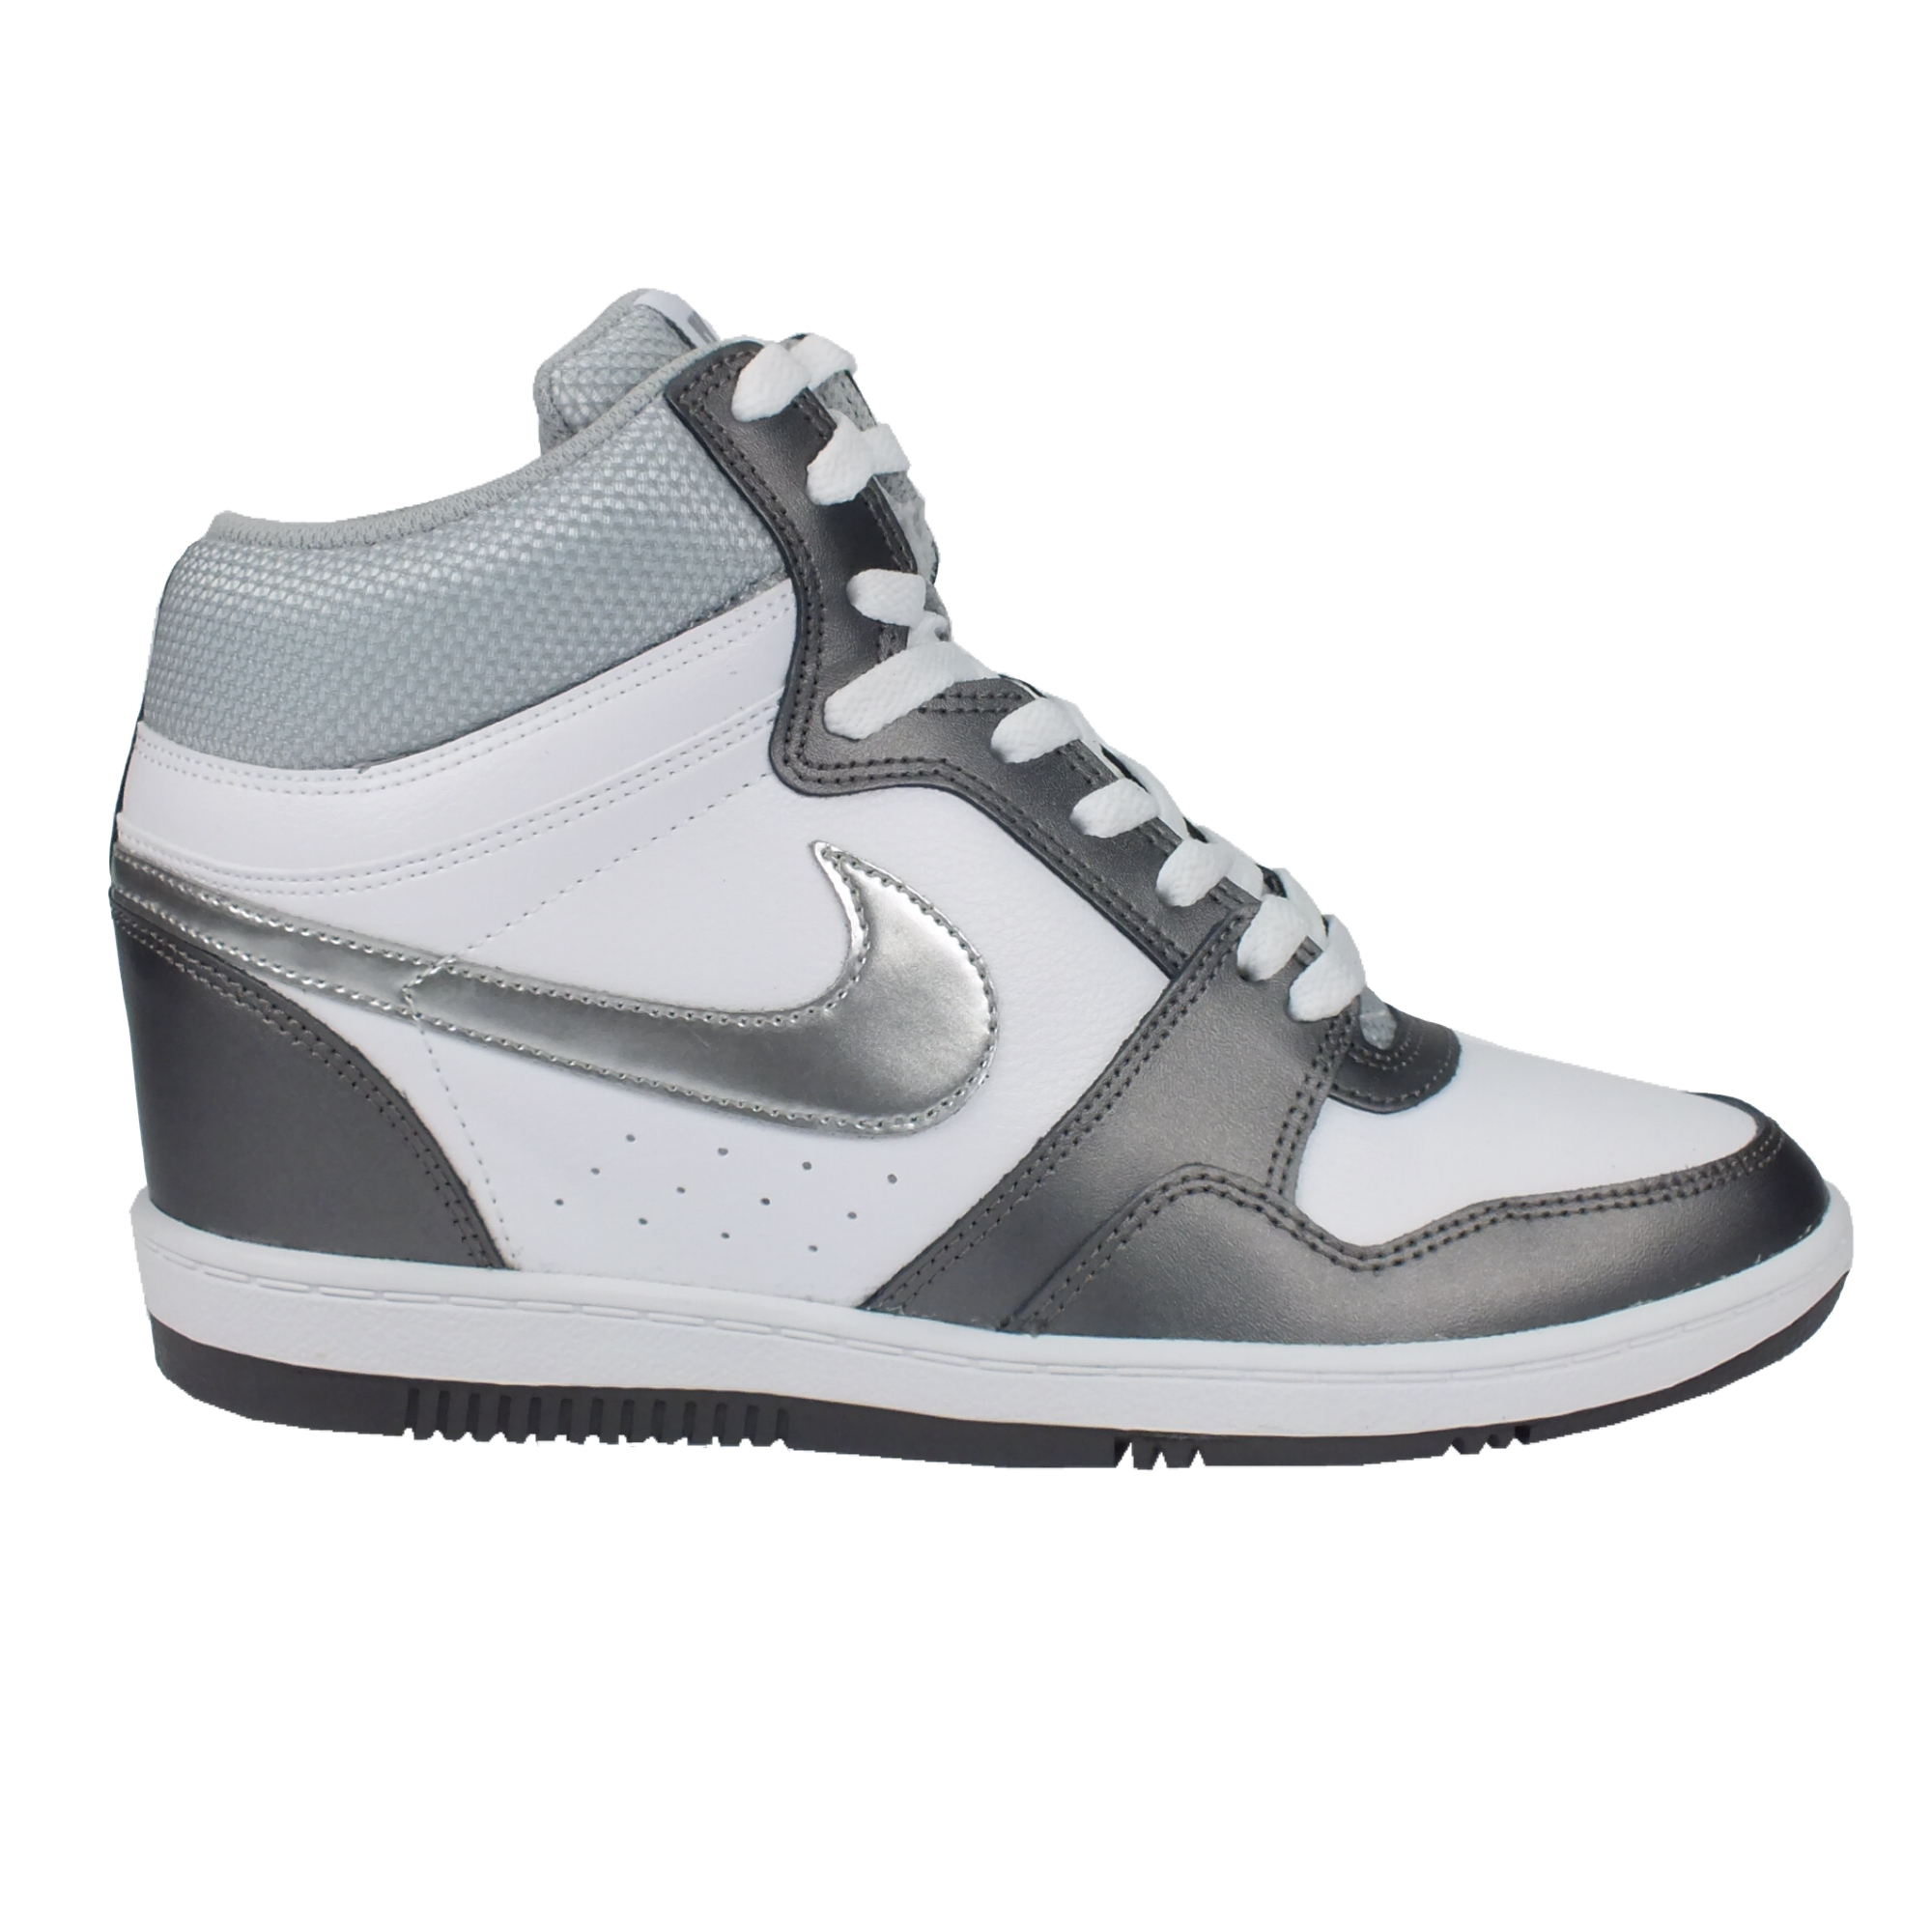 nike force sky hi leather women sneaker with hidden wedge heel various colours ebay. Black Bedroom Furniture Sets. Home Design Ideas